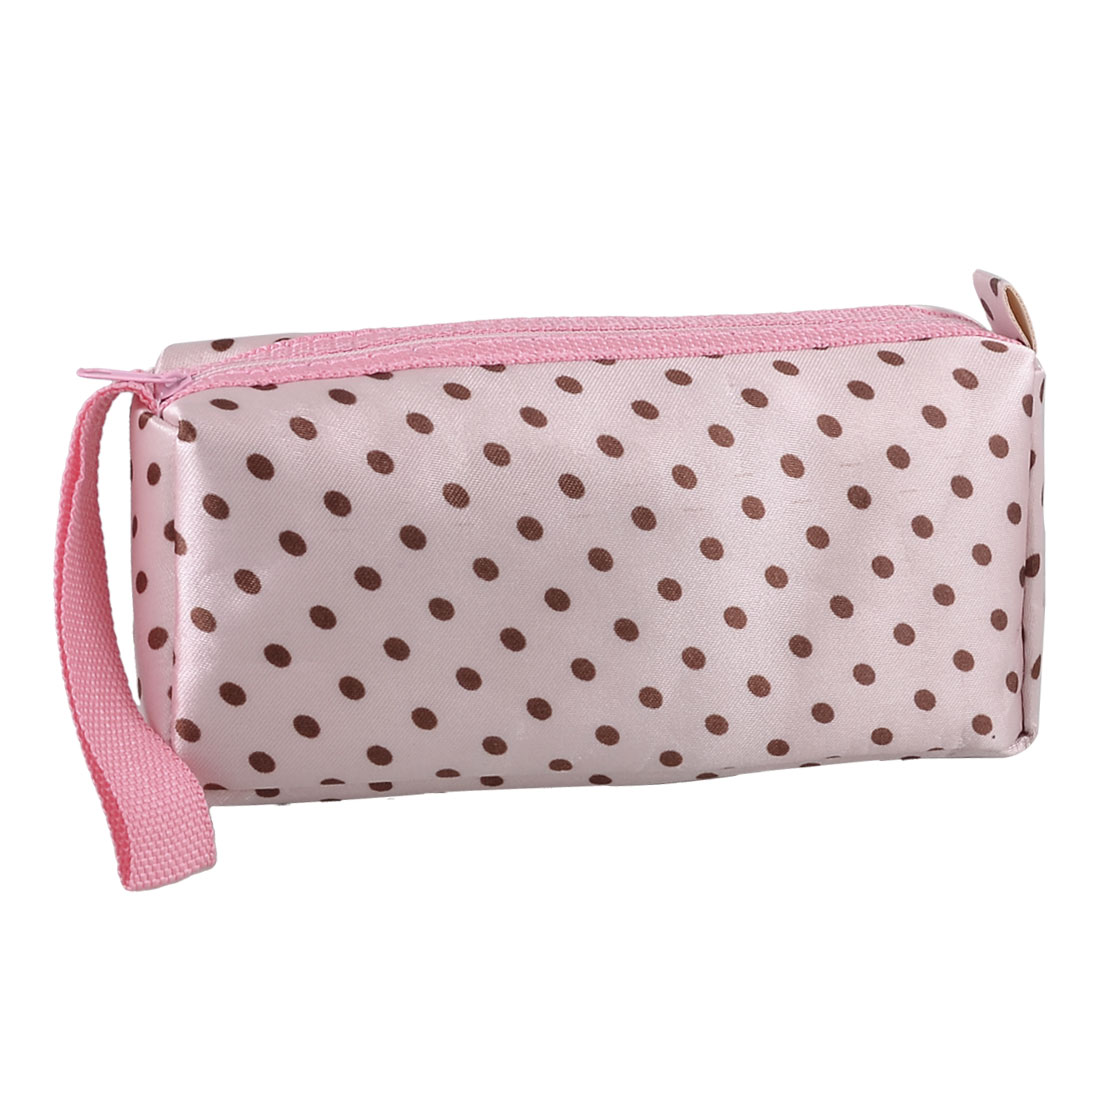 Lady Pink Brown Dotted Perfume Brushes Pouch Makeup Holder Bag w Strap